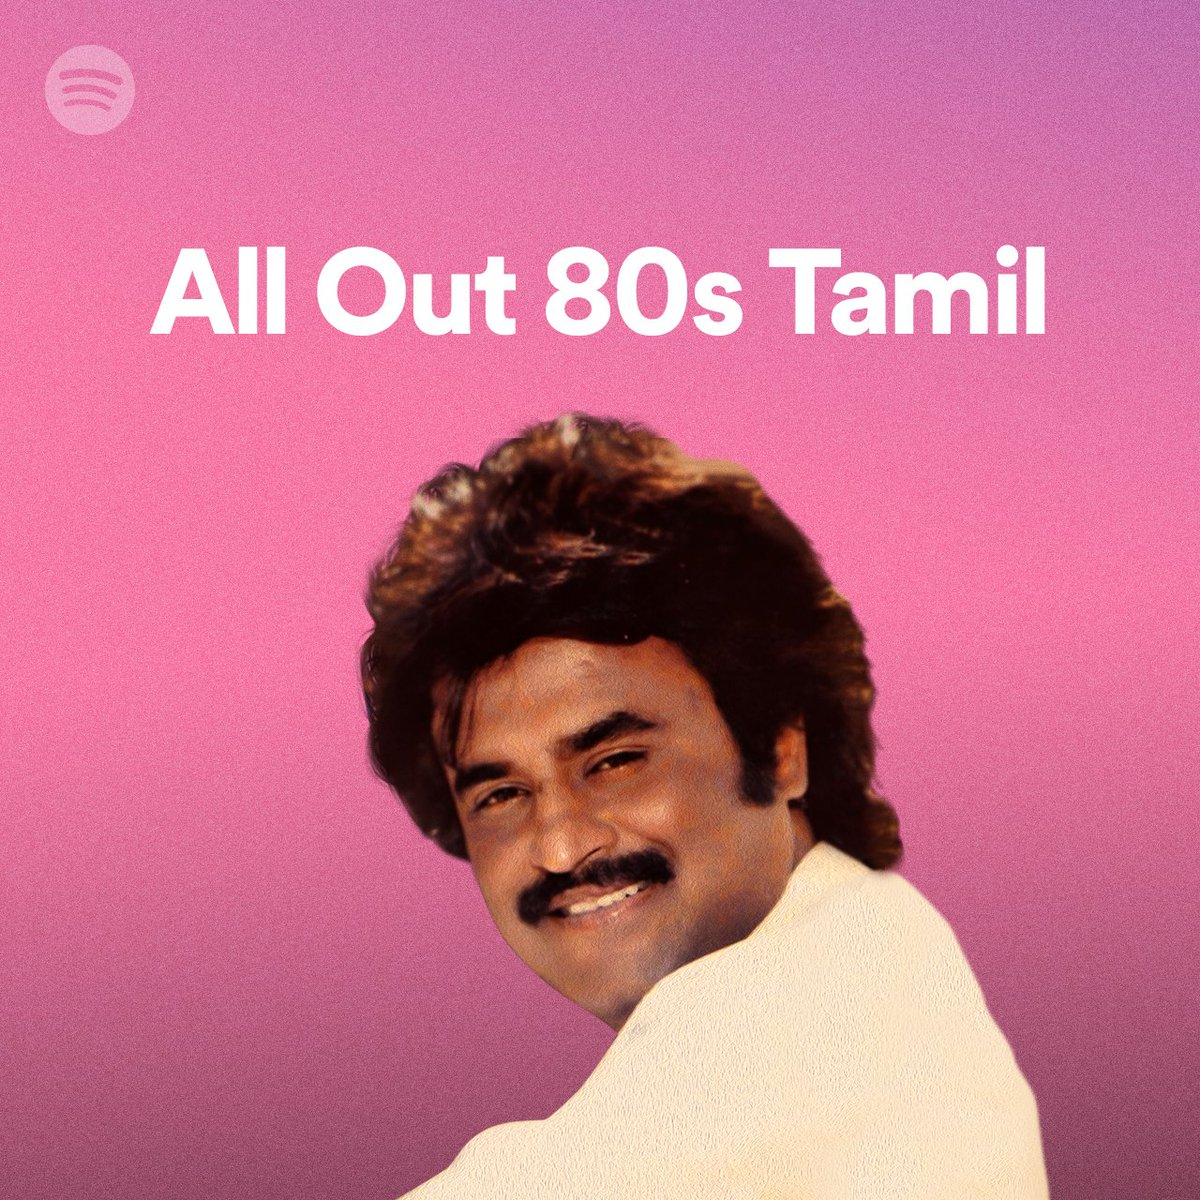 Here's the #AllOut80sTamil playlist   Listen to this 7 hours non-stop 80's hit songs only on @spotifyindia   ⏯  https://t.co/arYe12xv21 https://t.co/5pu0IZPPes